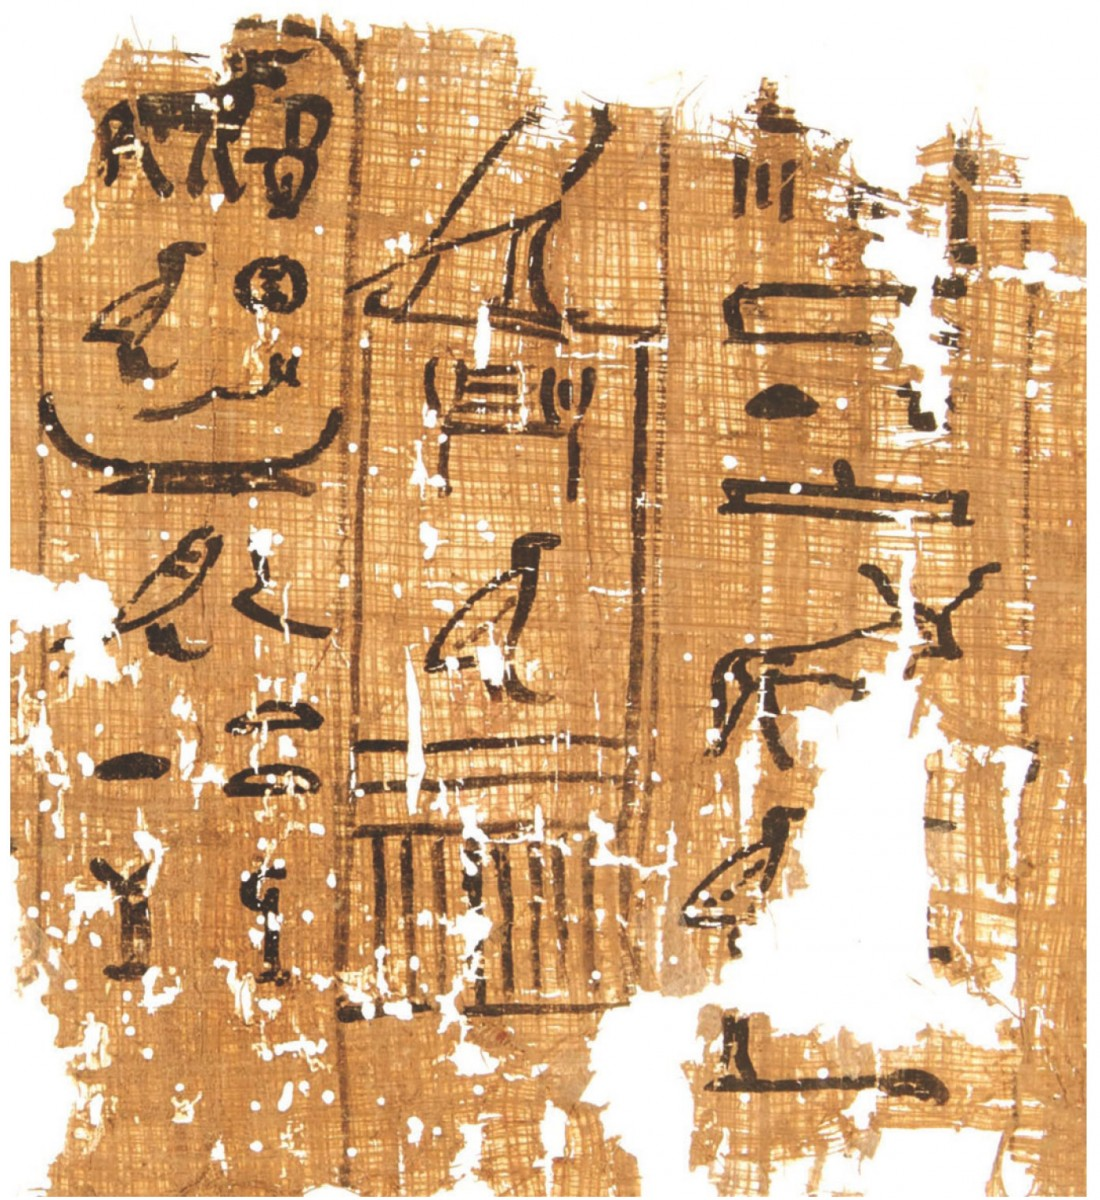 Part of papyrus inscribed with an account dating to the 13th cattle count of King Khufu. Photo Credit: G. Pollin/The History Blog.